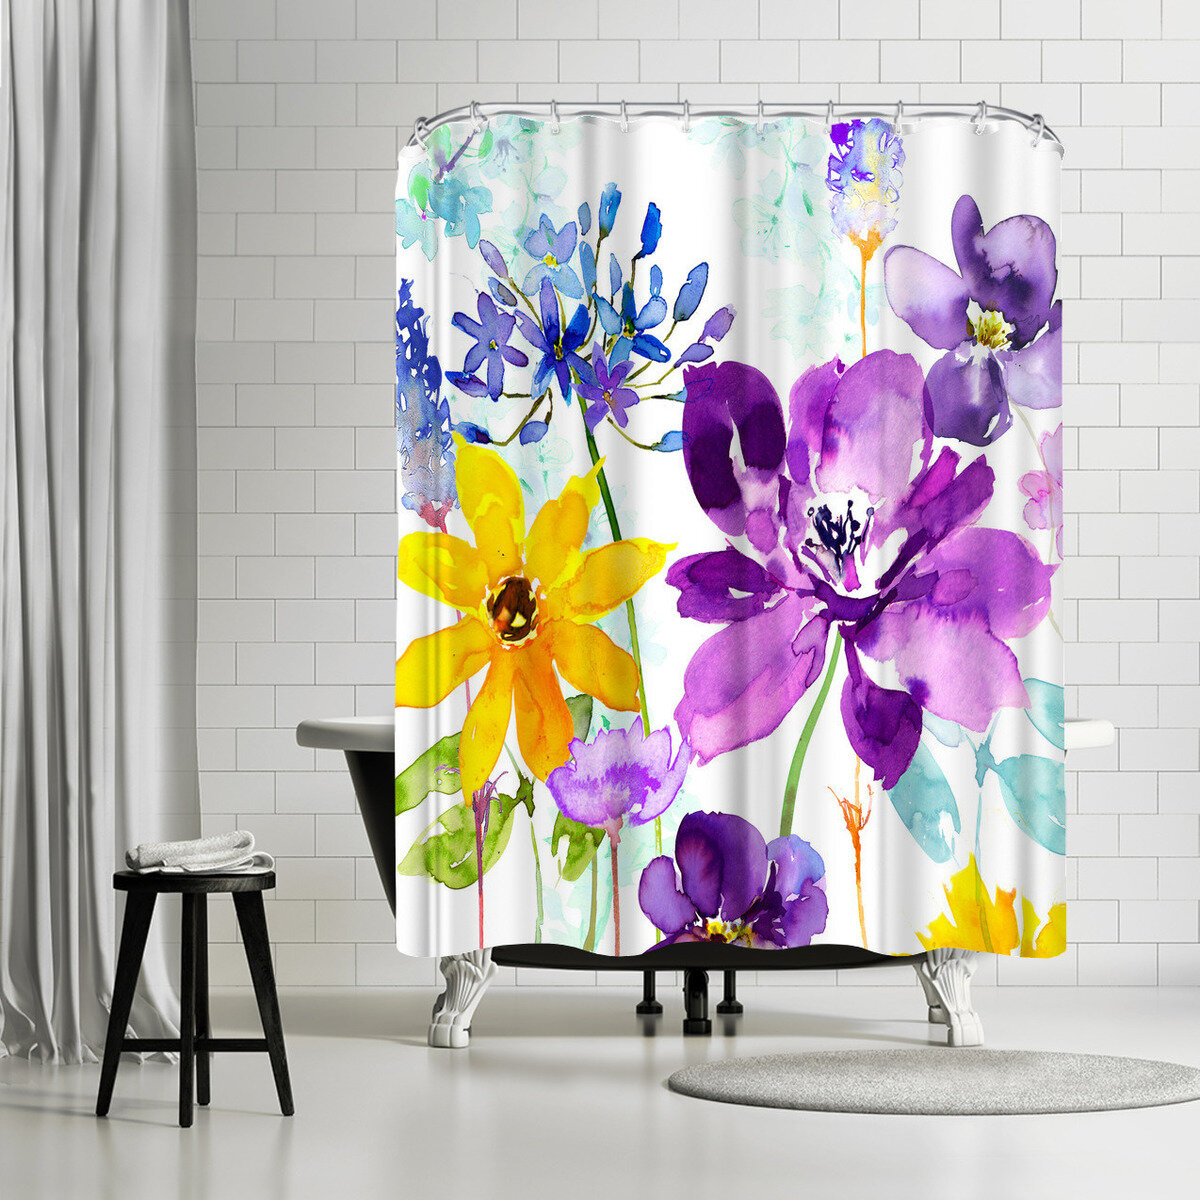 East Urban Home Harrison Ripley Floral Shimmer Shower Curtain